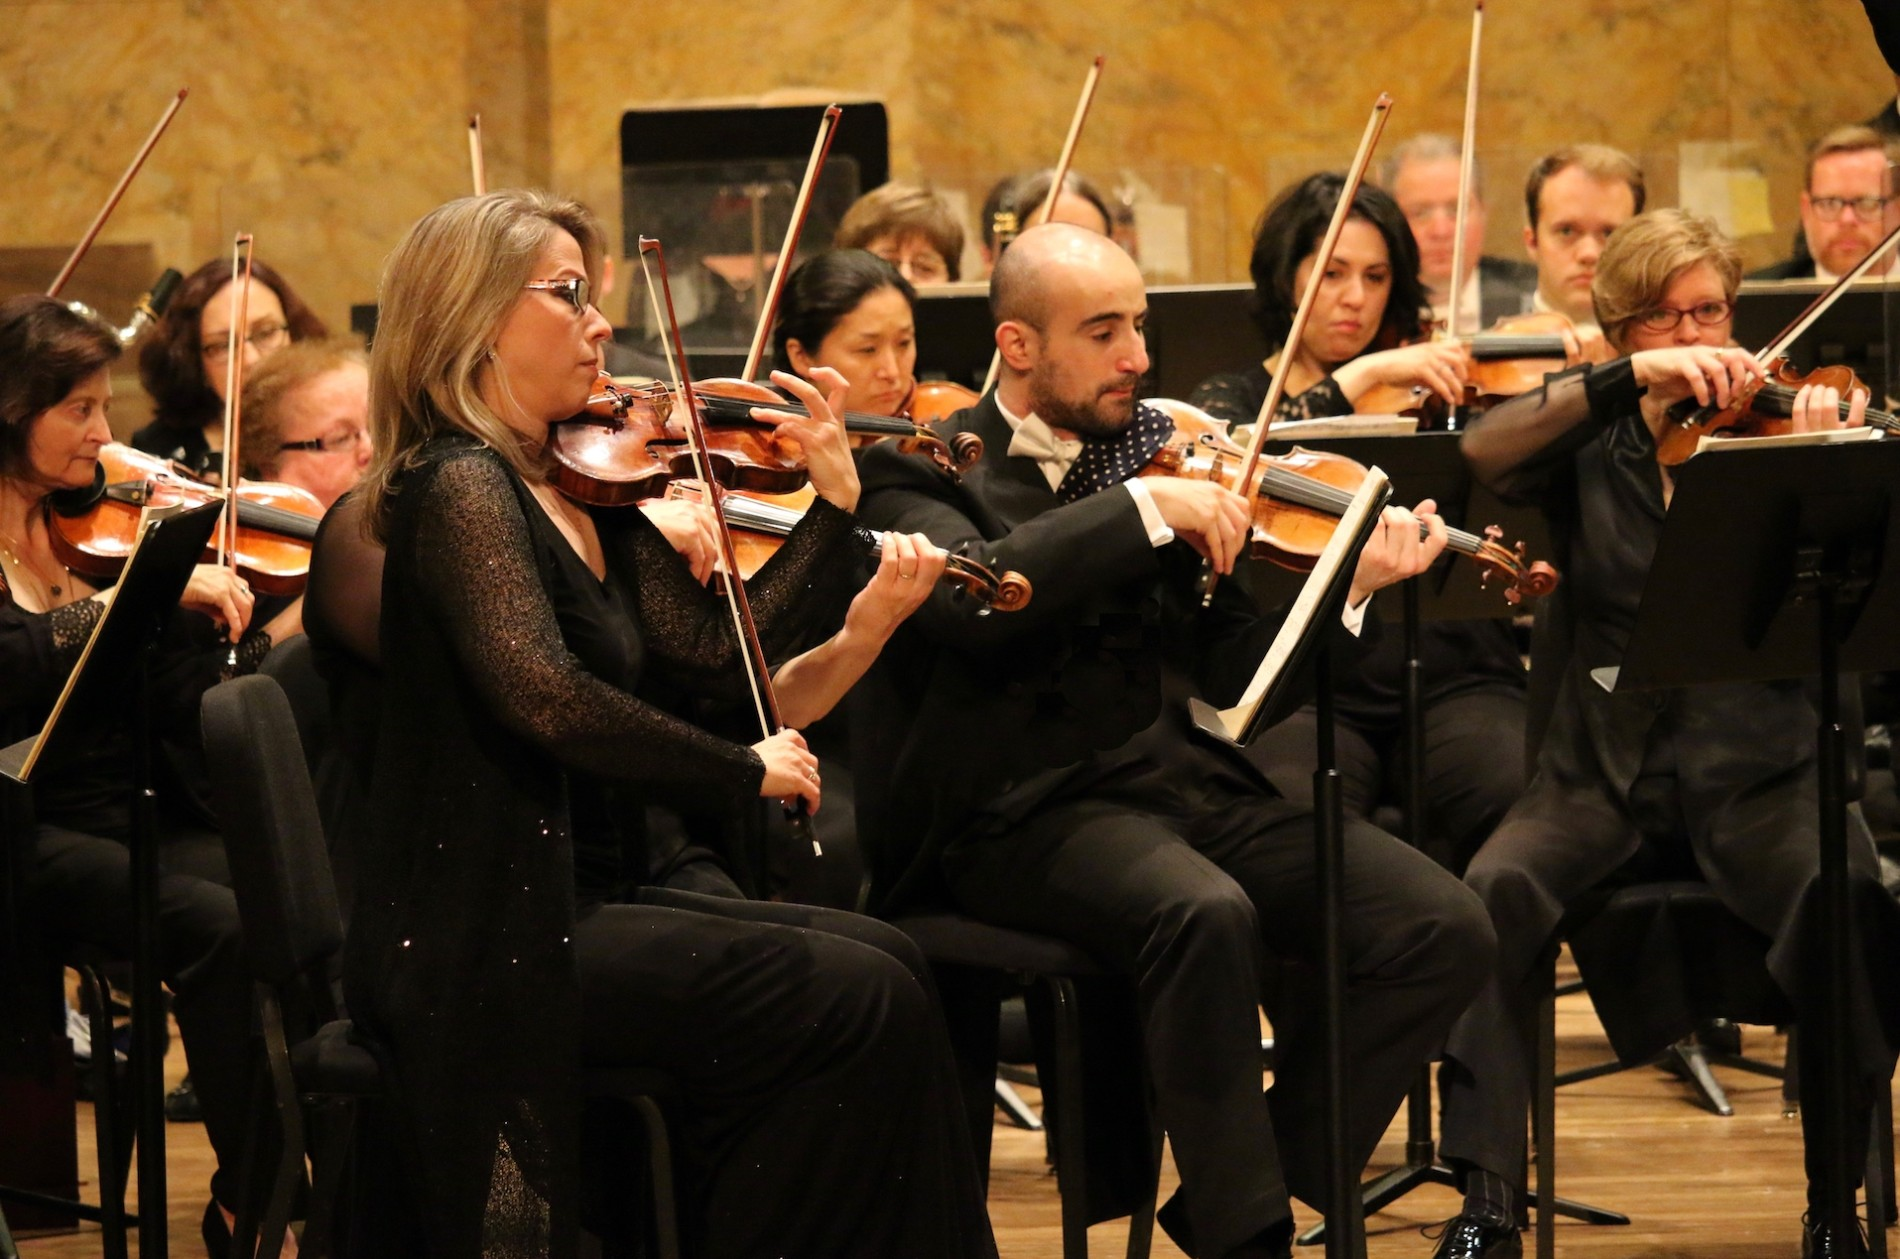 PSO violinists playing onstage in concert black